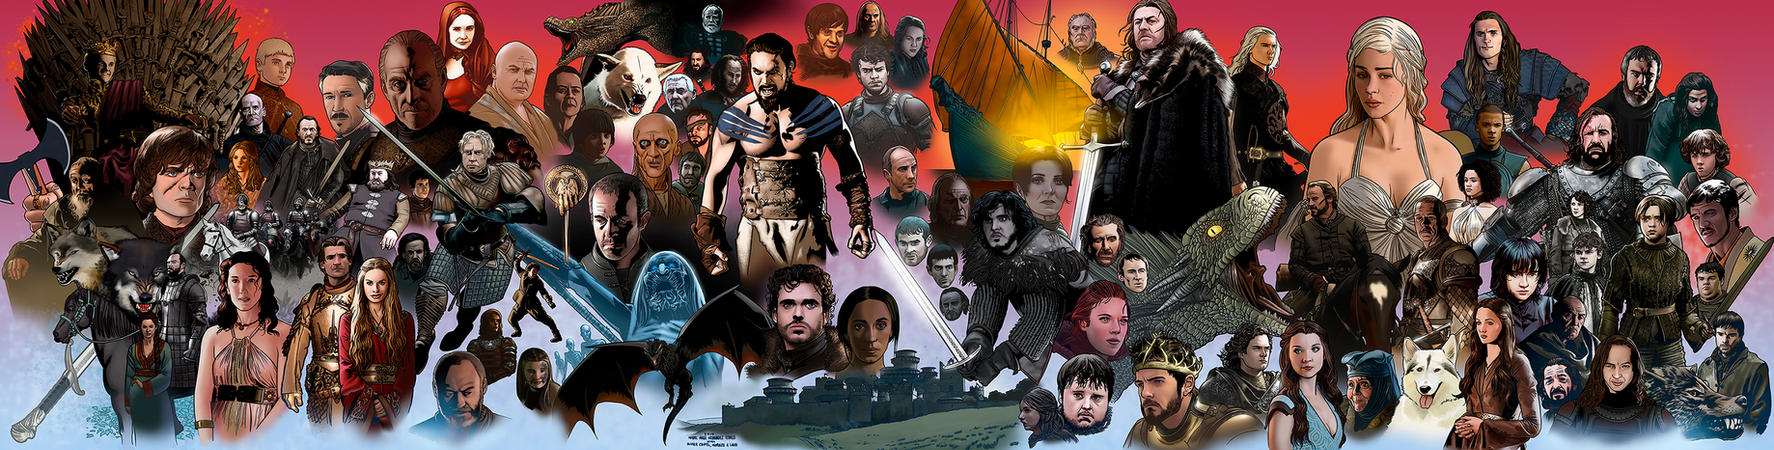 Game of thrones by miguelangelh